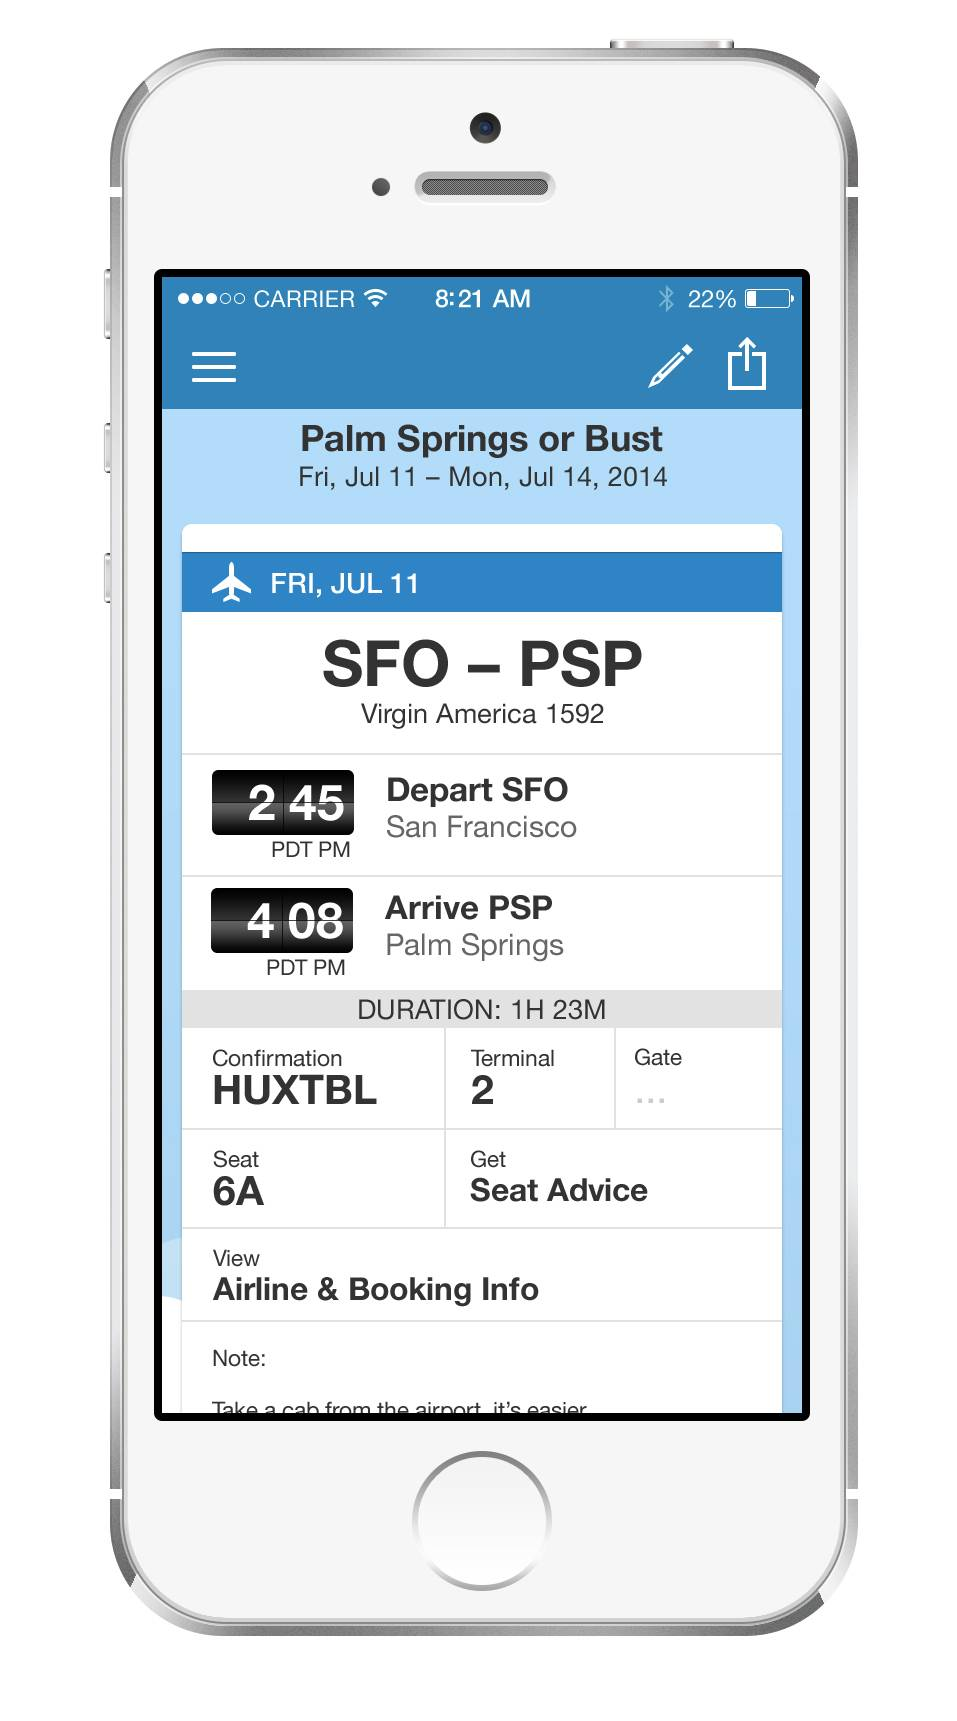 This product image provided by TripIt shows the TripIt app for iPhone. TripIt automatically creates a day-by-day travel itinerary based on all the flight, hotel and other confirmation emails that you forward to a given TripIt address.